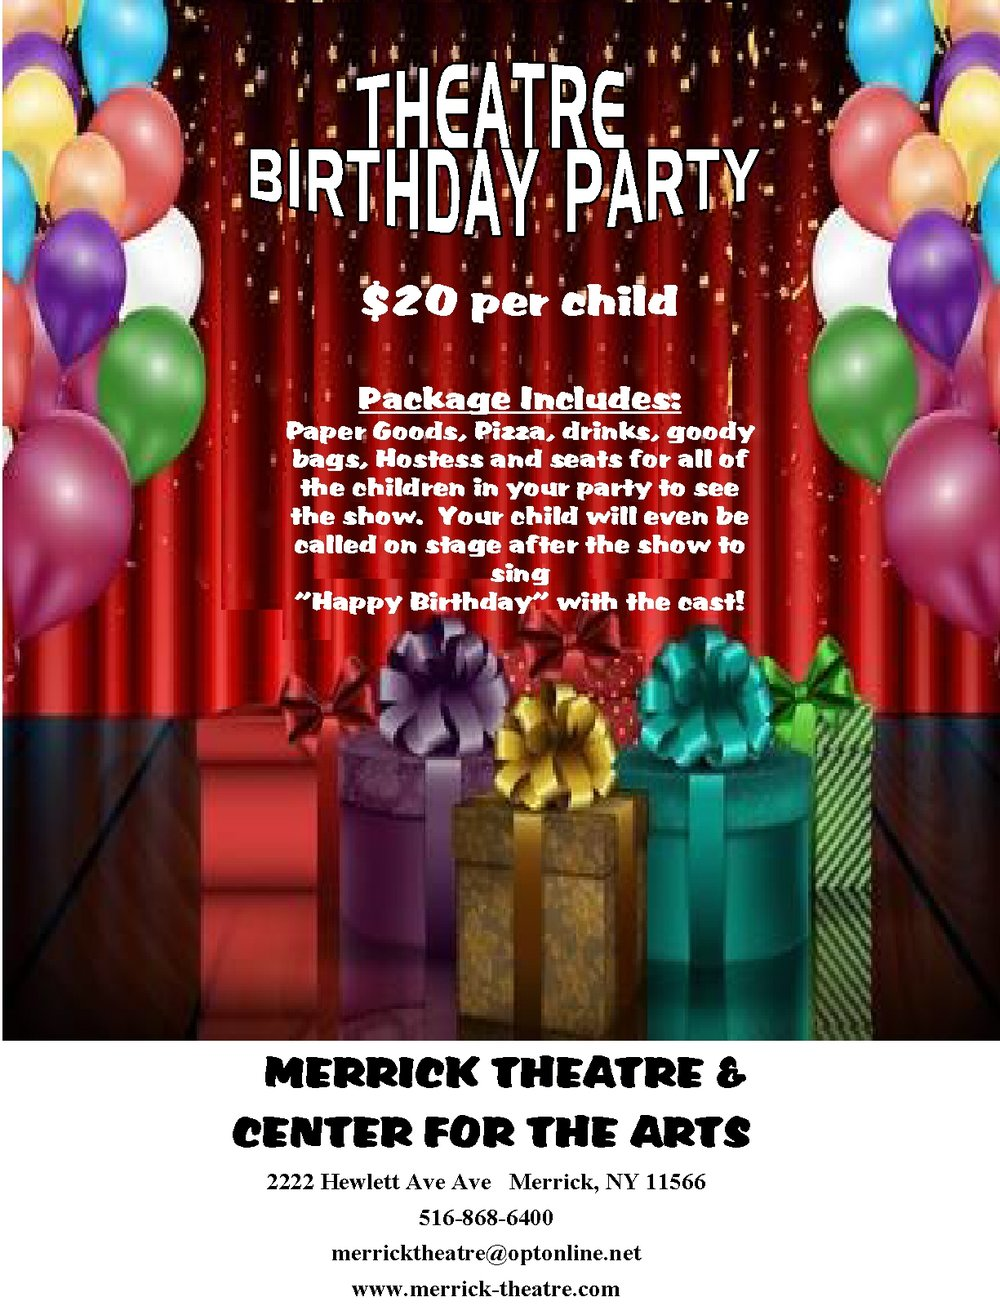 Birthday Party Flyer Revised.jpg